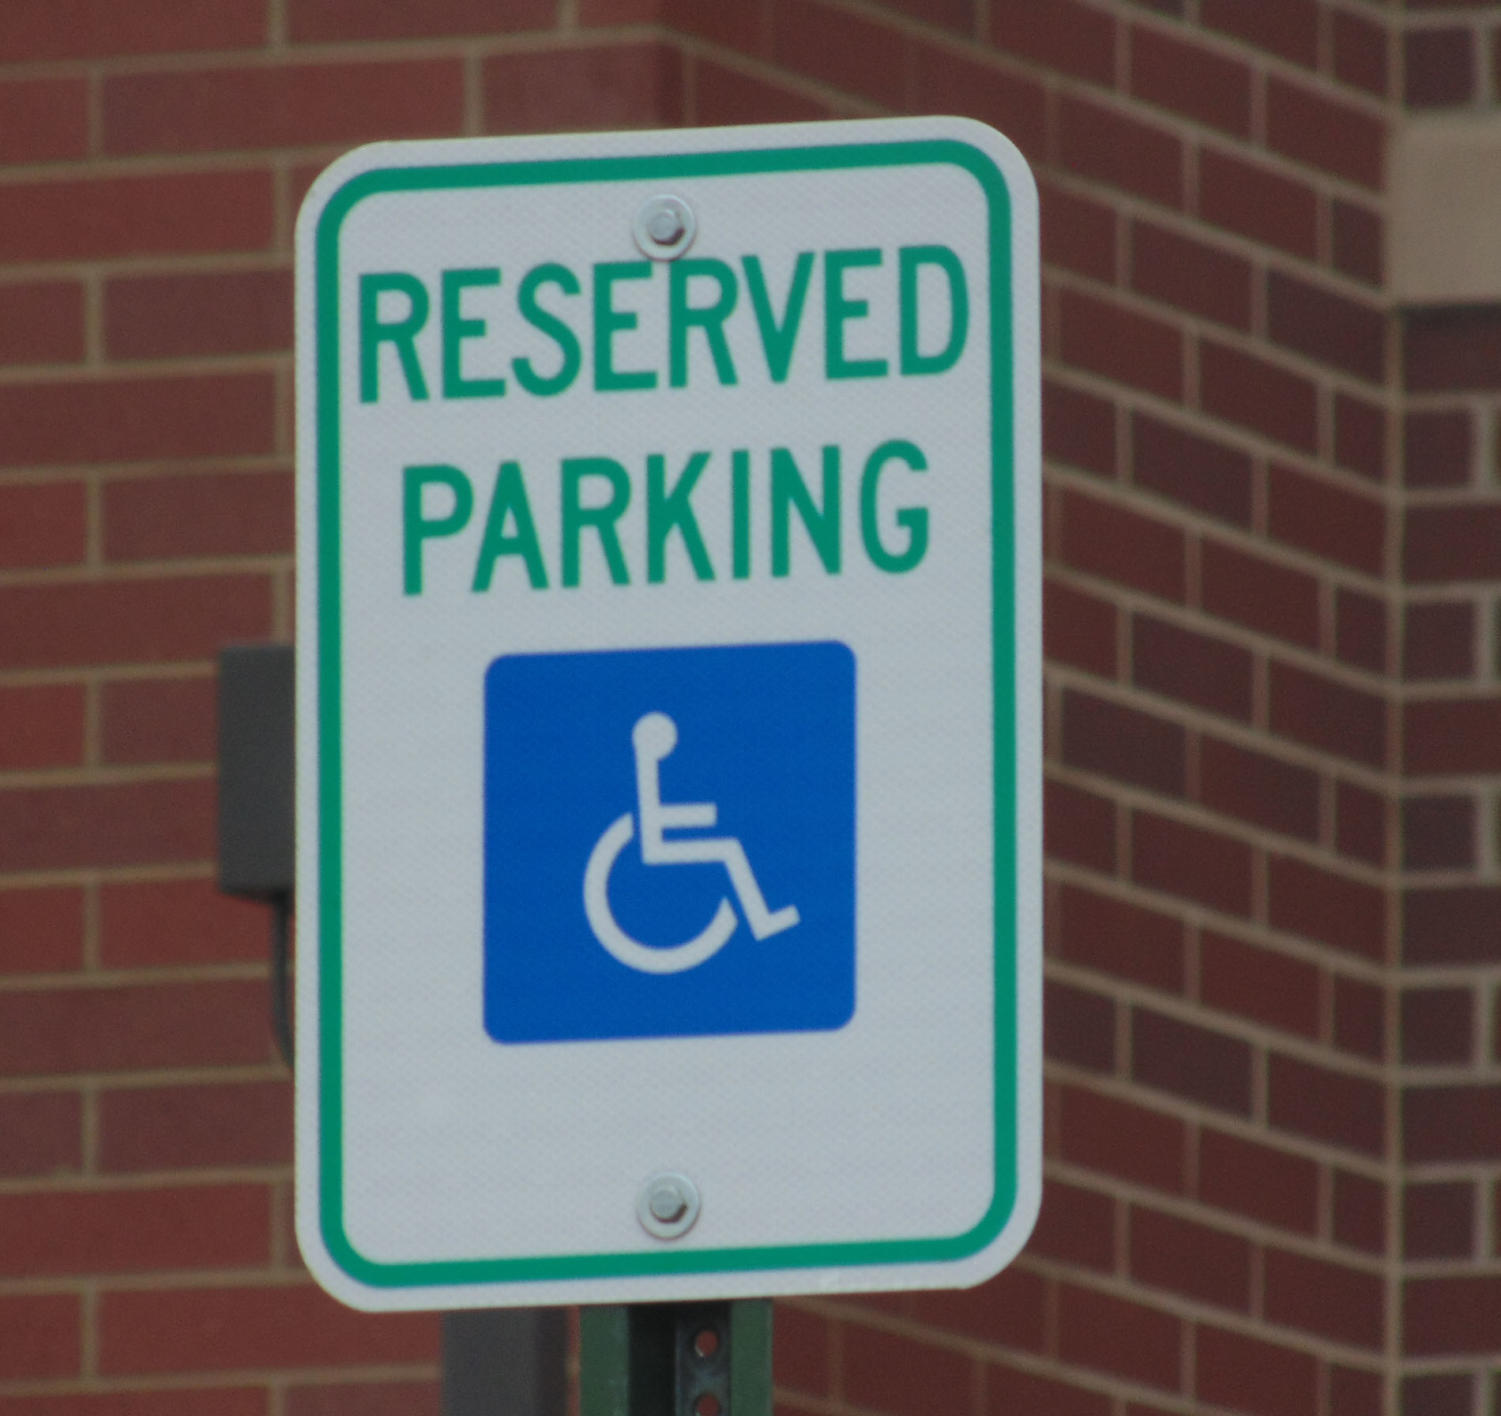 Handicapped parking is being constantly abused